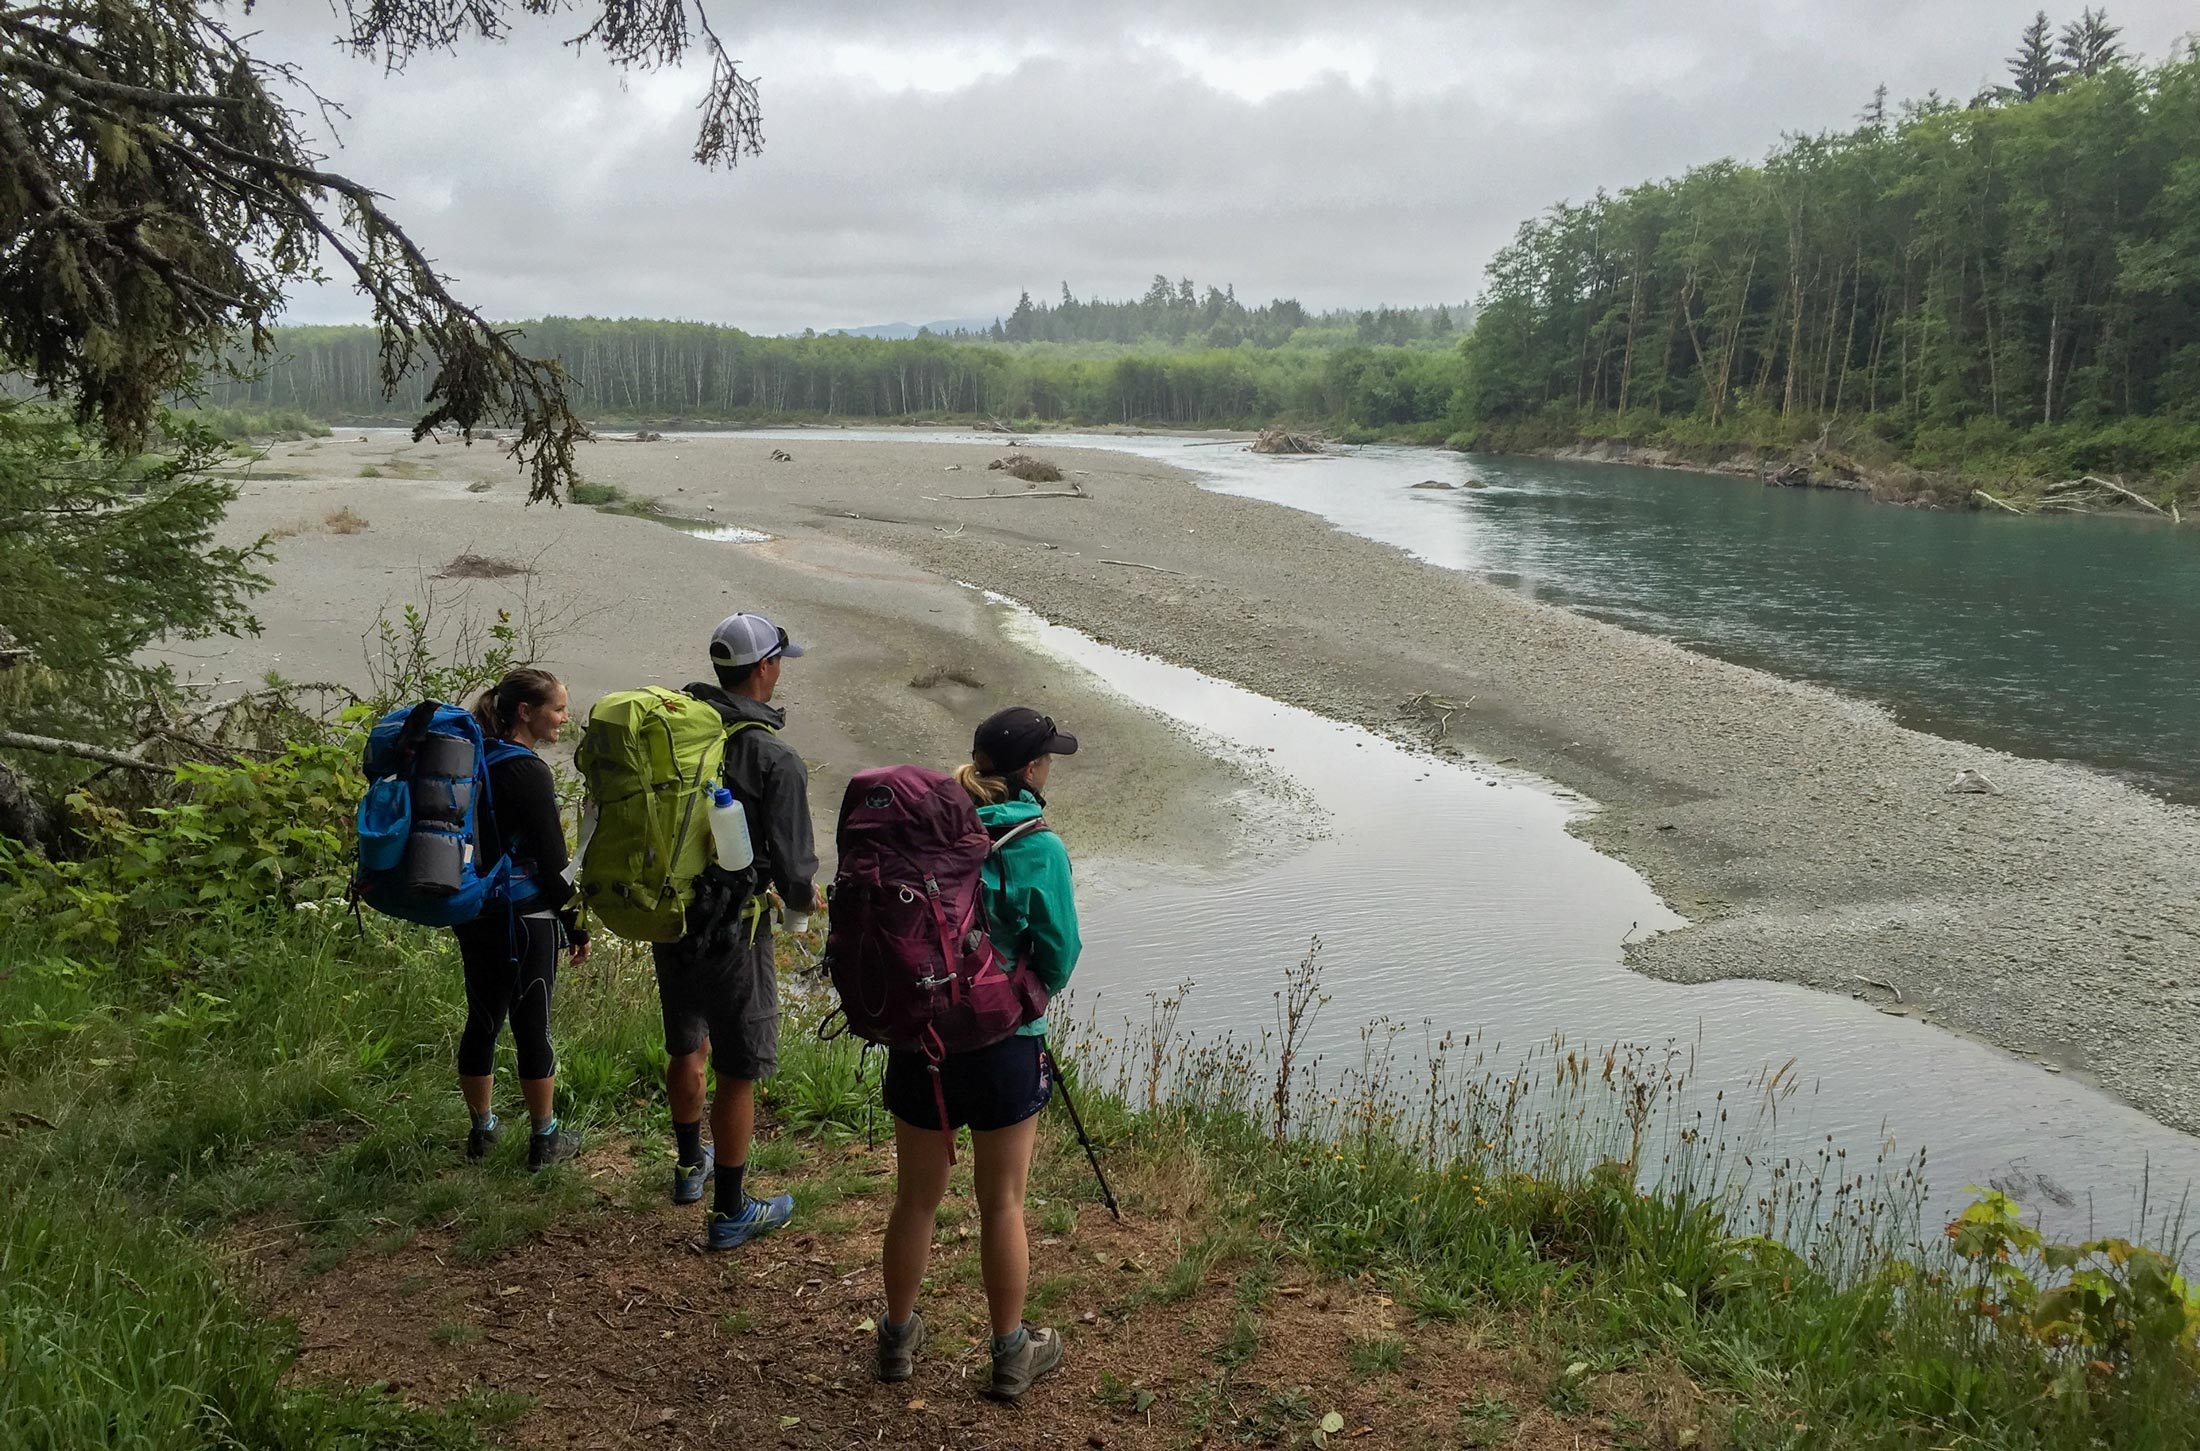 End your trip along the banks of the Hoh River on your way to the Oil City Trailhead